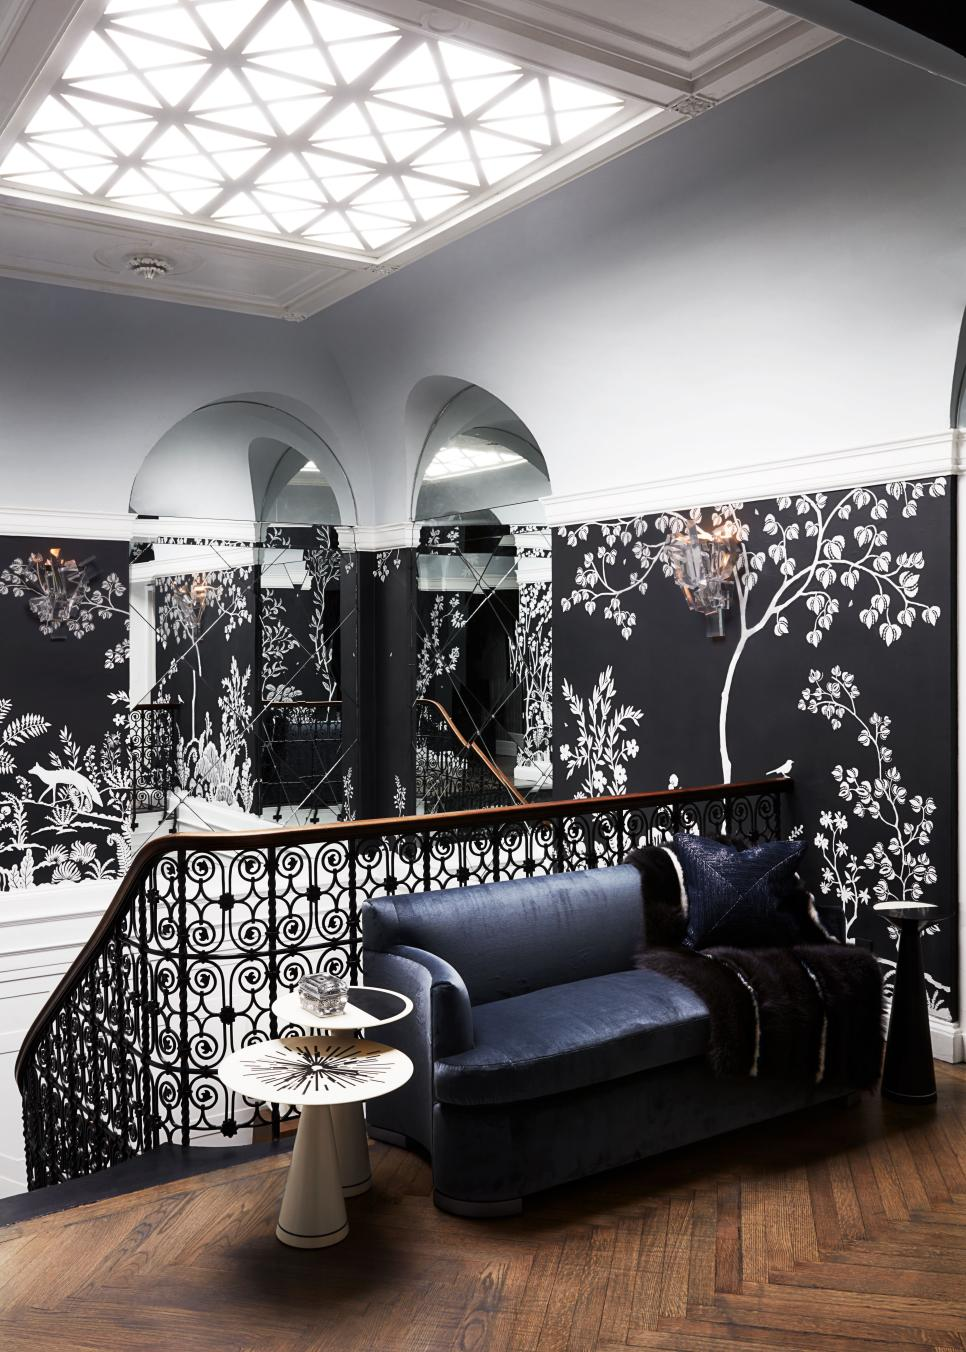 Luxury Mirrored Stairway with Wrought-Iron Railing, Sunlight and Wall Mural